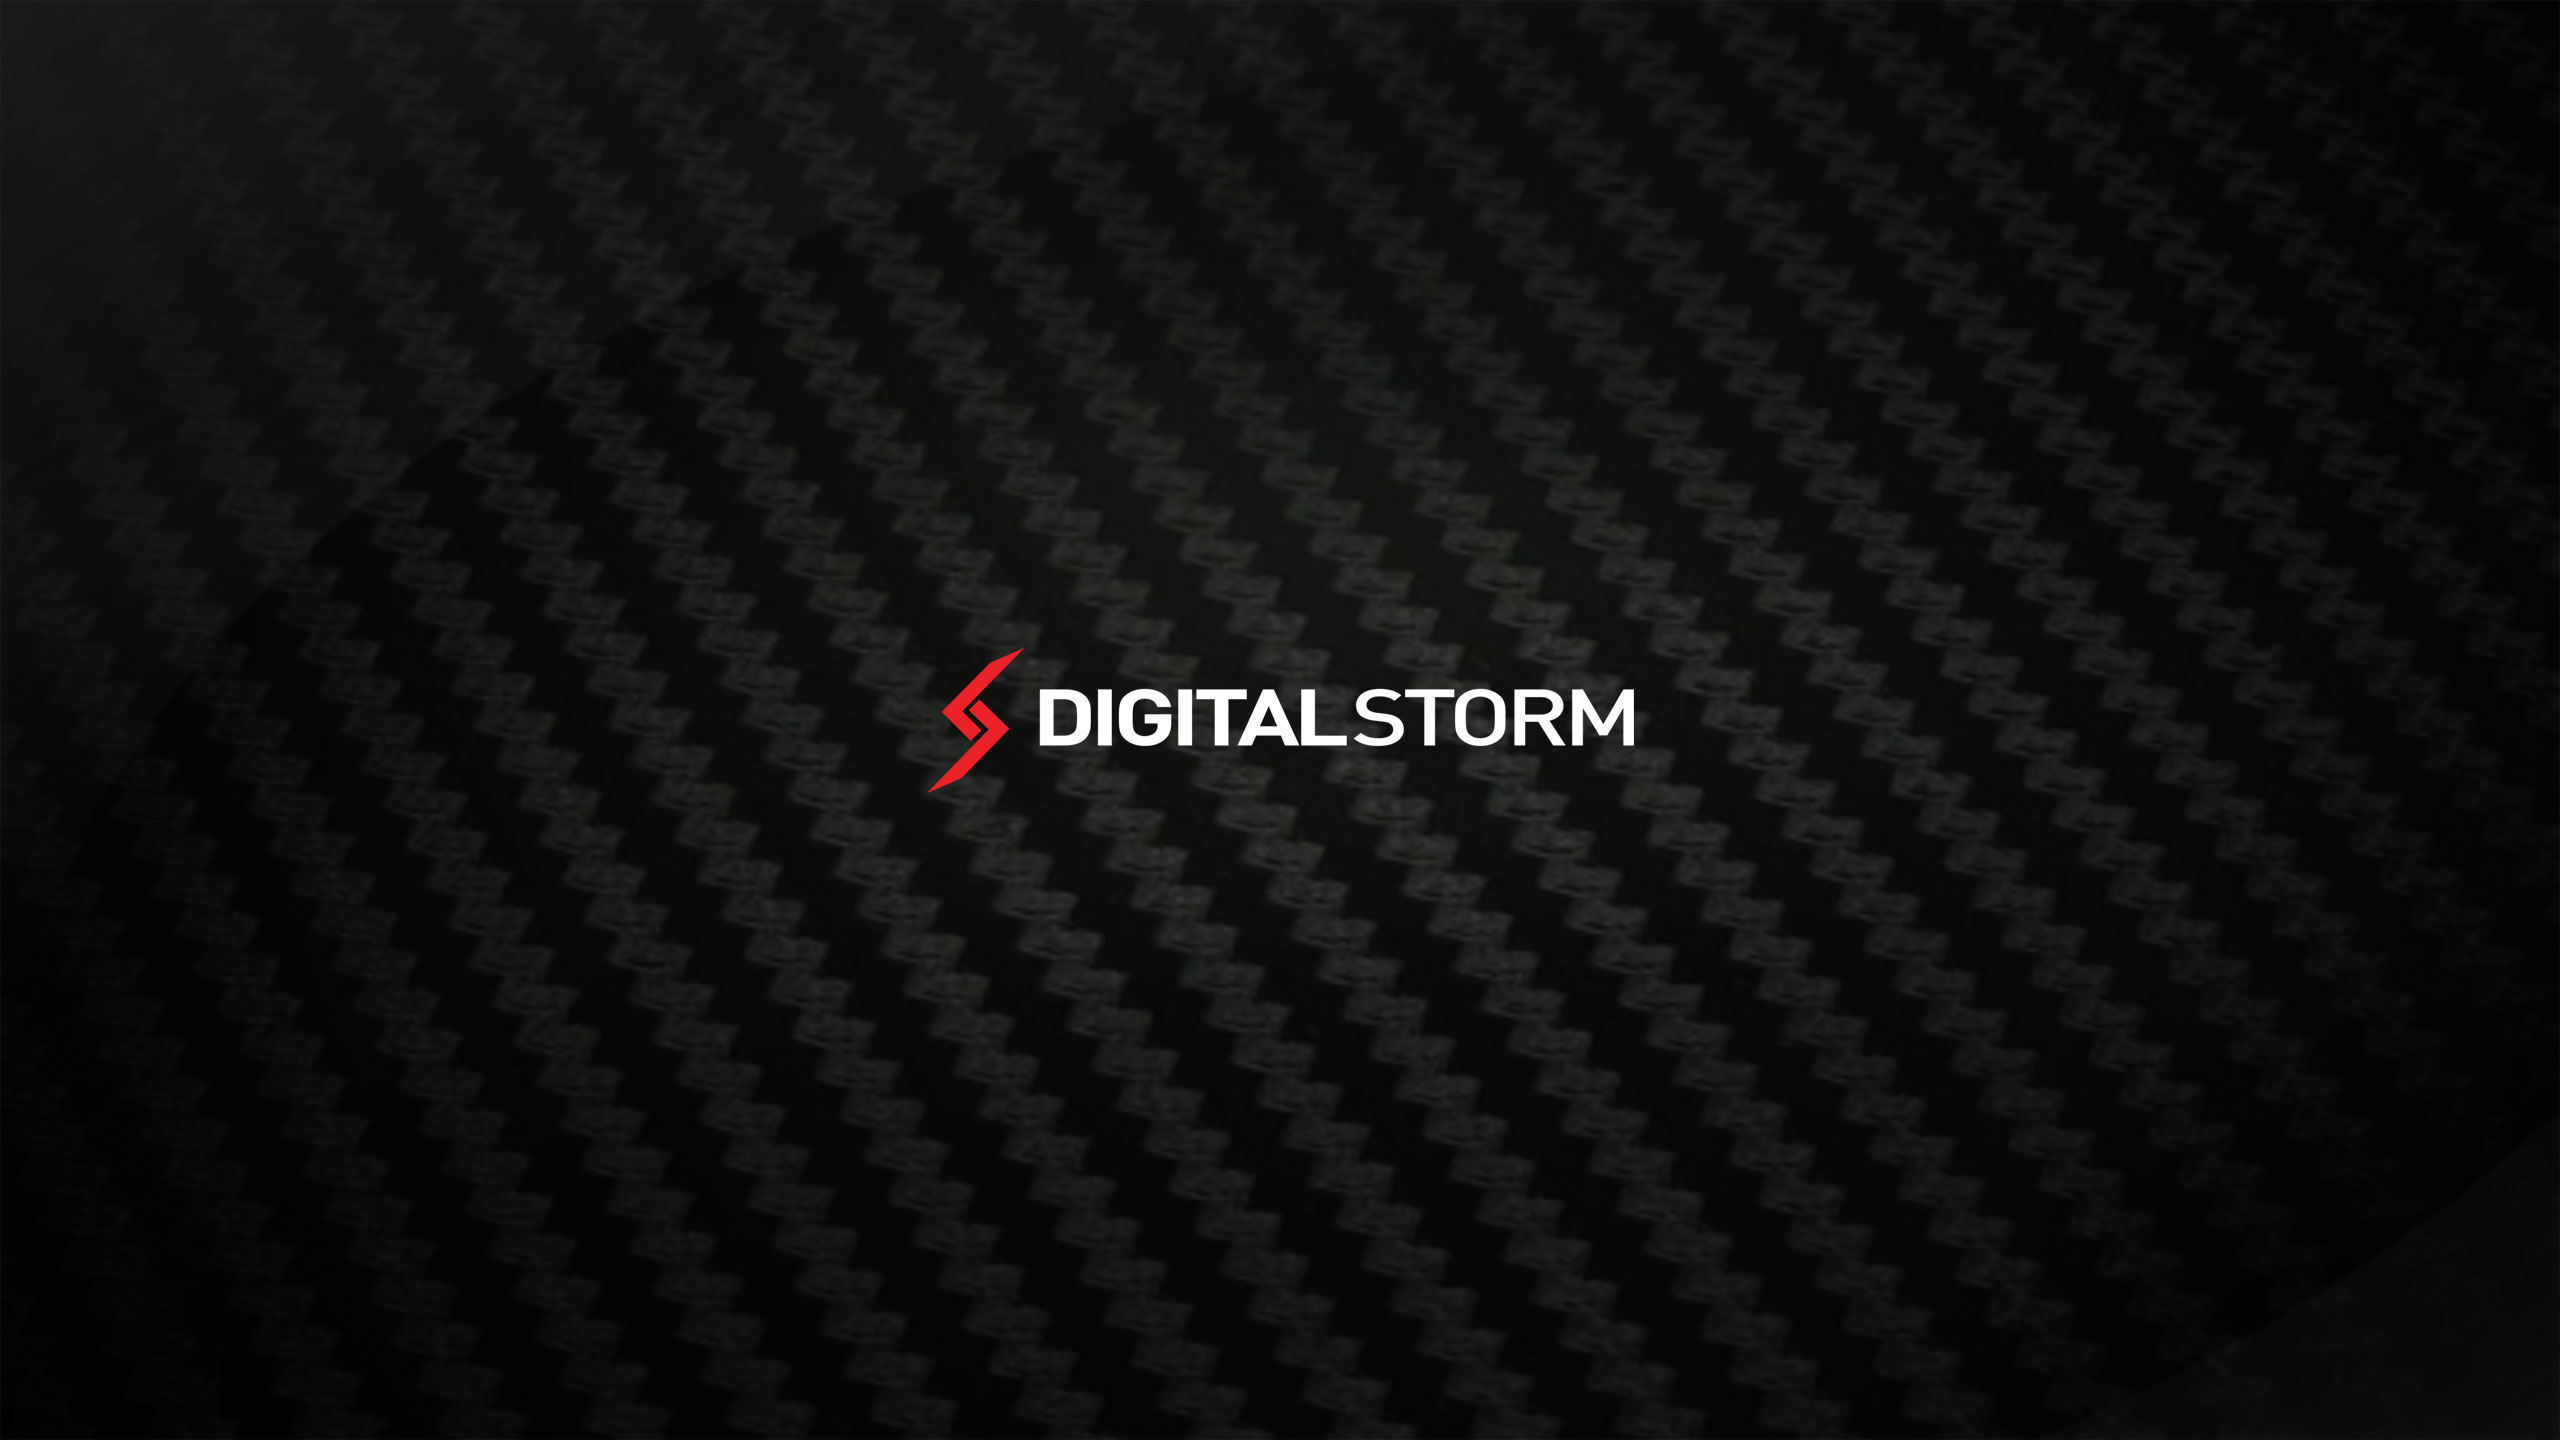 digital storm wallpapers 1920x1200-#6